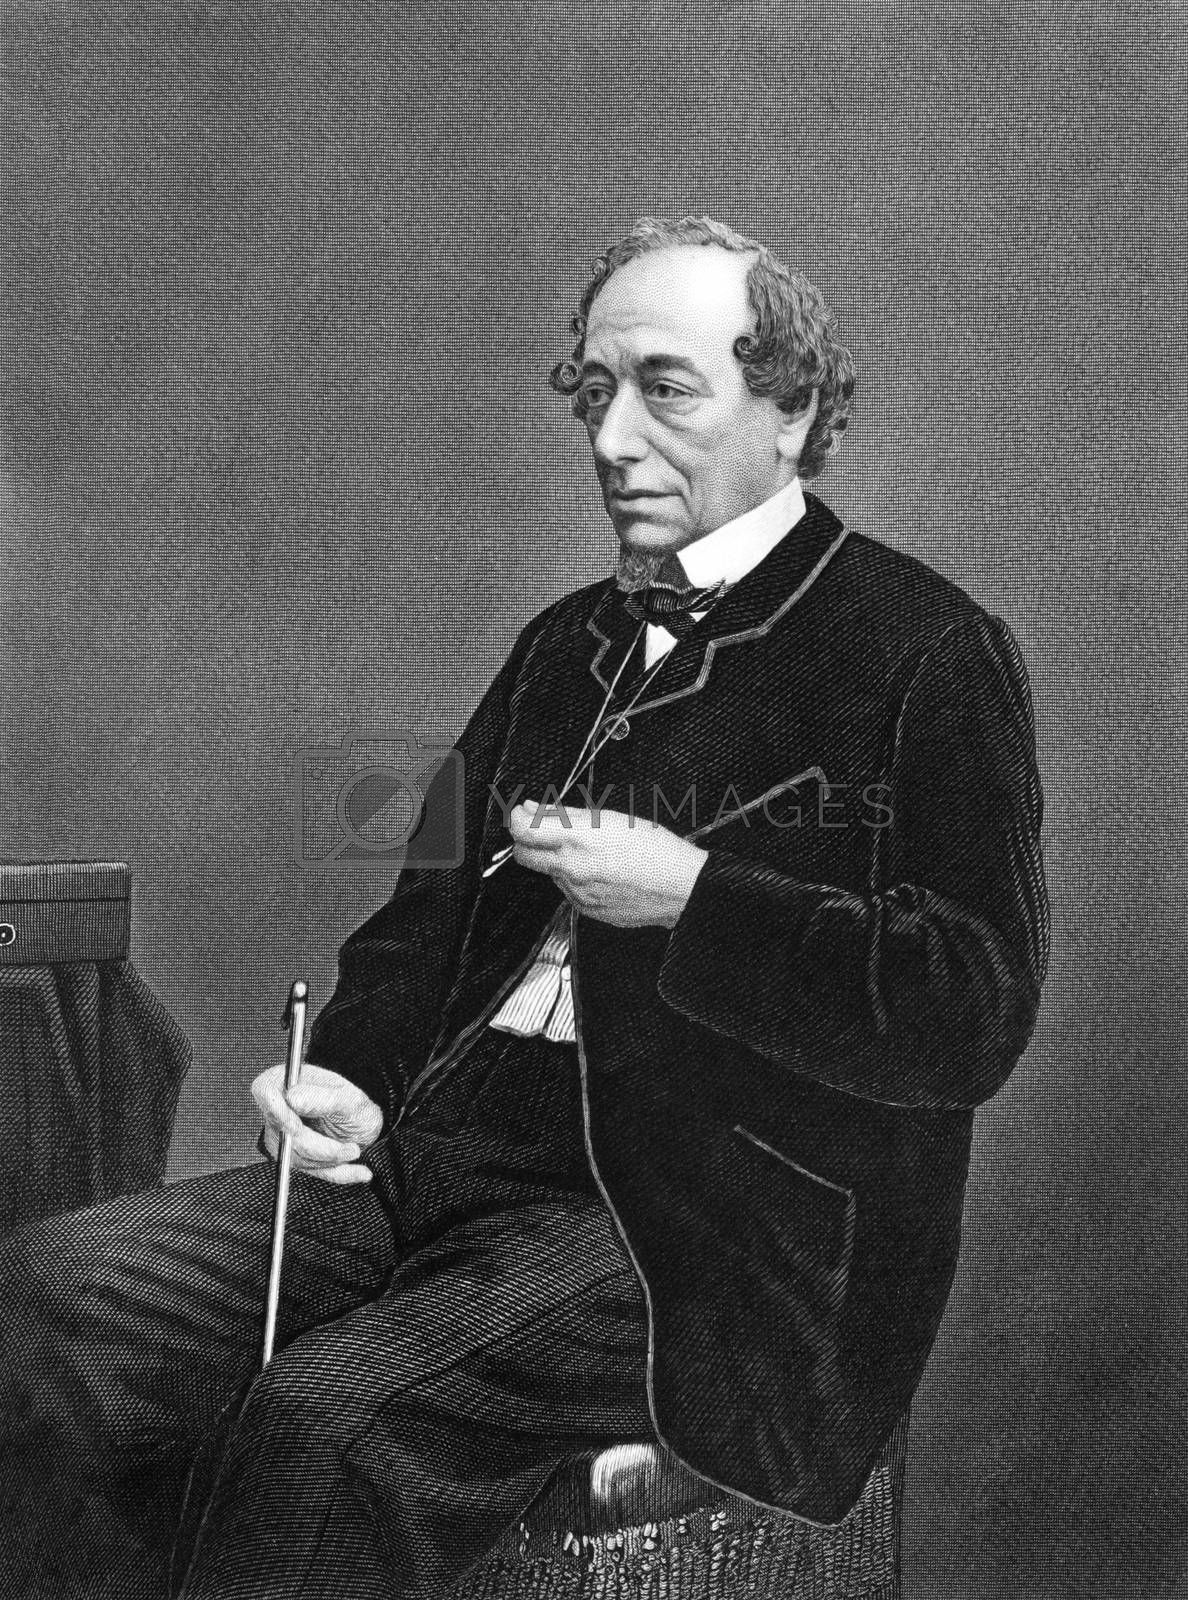 Benjamin Disraeli, 1st Earl of Beaconsfield  (1804-1881) on engraving from 1873. British Prime Minister, parliamentarian, Conservative statesman and literary figure. Engraved by unknown artist and published in  ''Portrait Gallery of Eminent Men and Women with Biographies'',USA,1873.